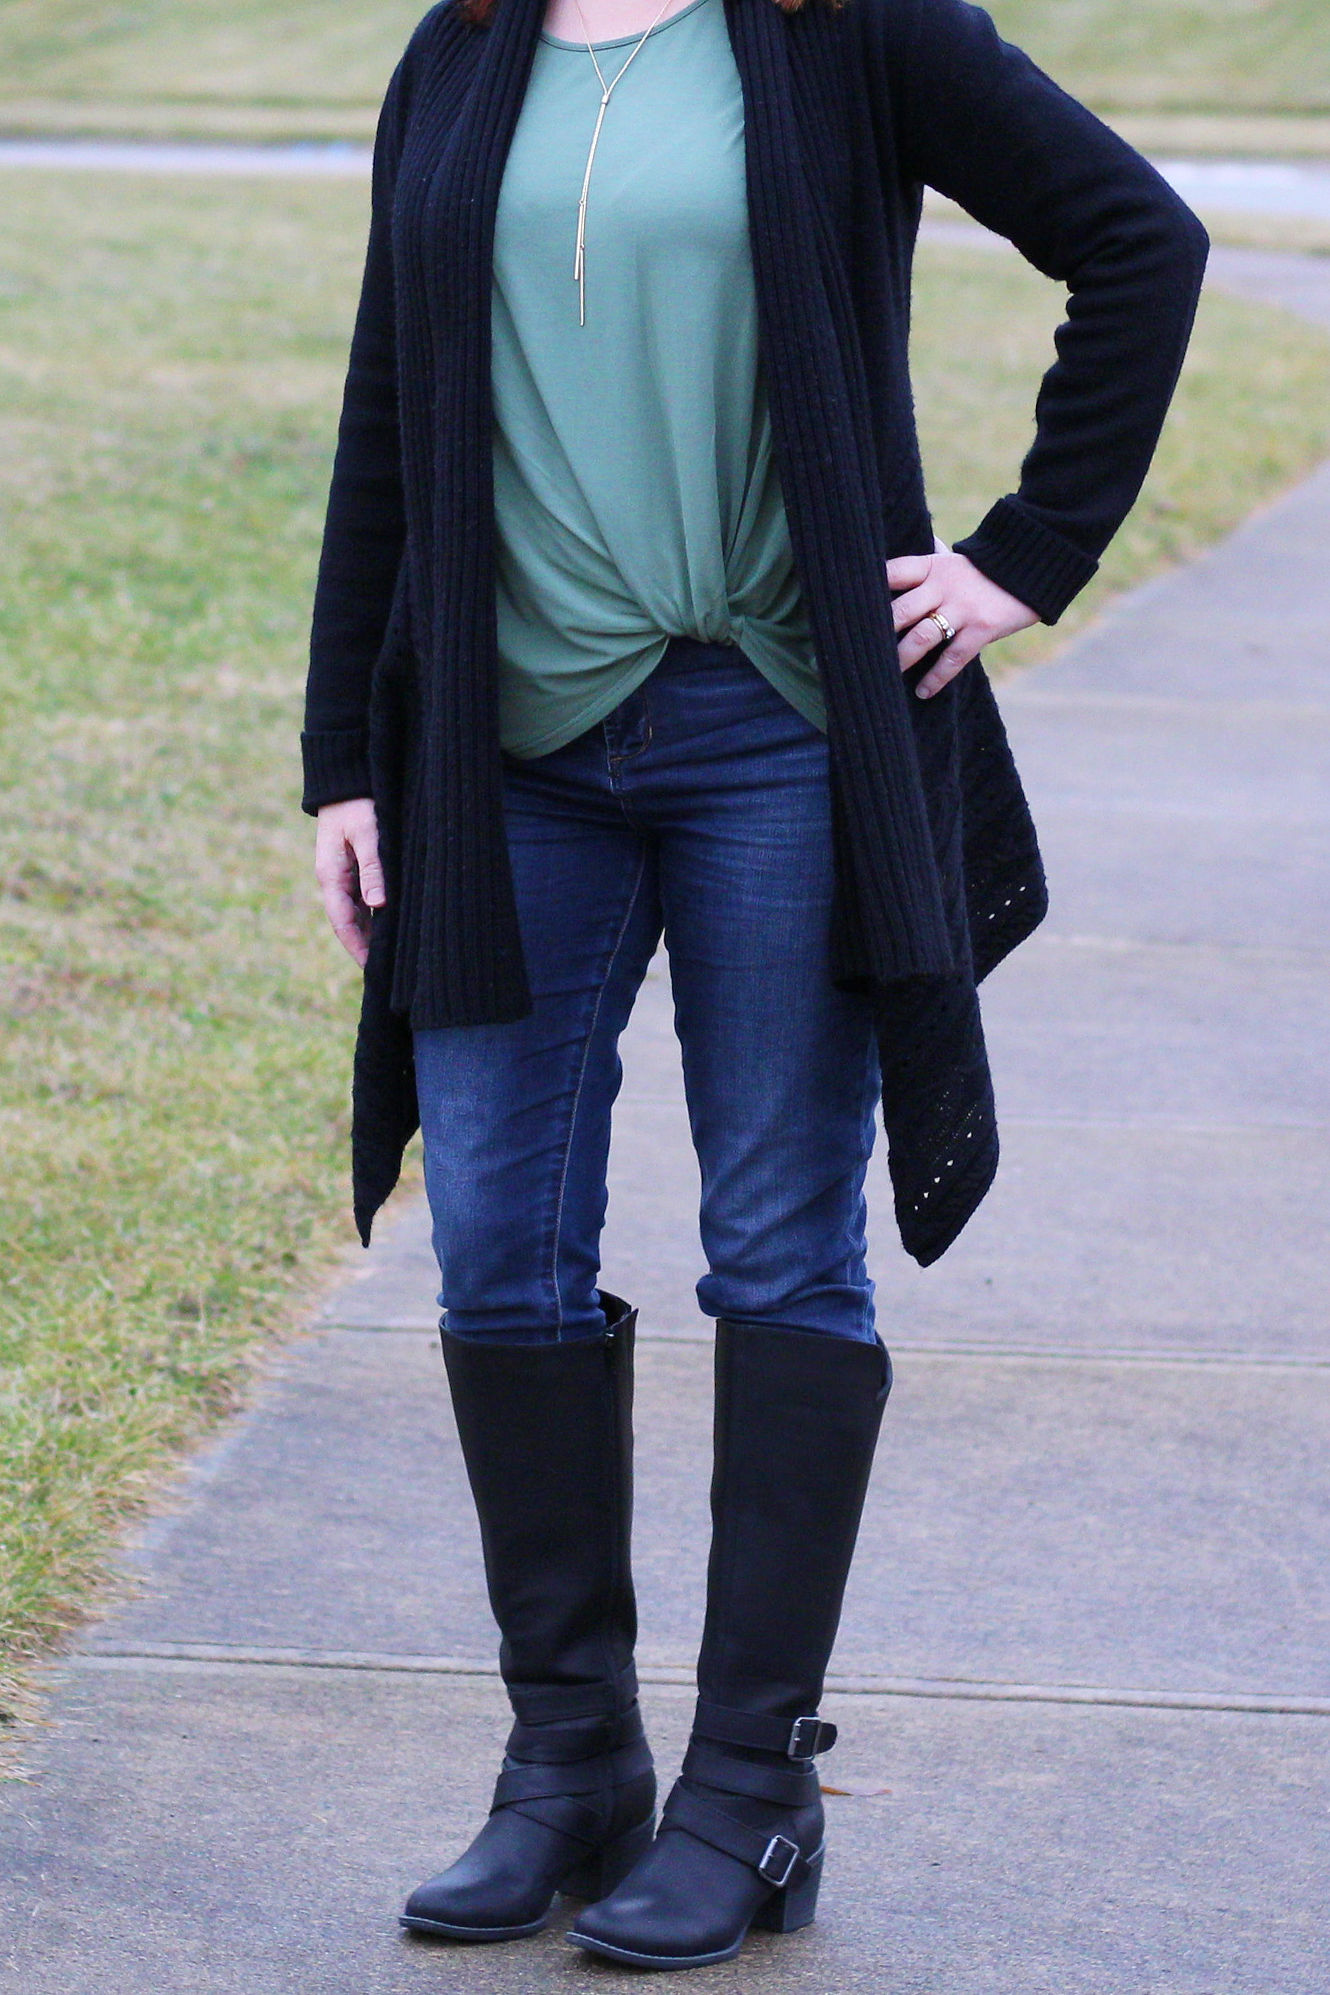 Green Twist Top And Black Cardigan / Winter Outfit / Dressed In Faith